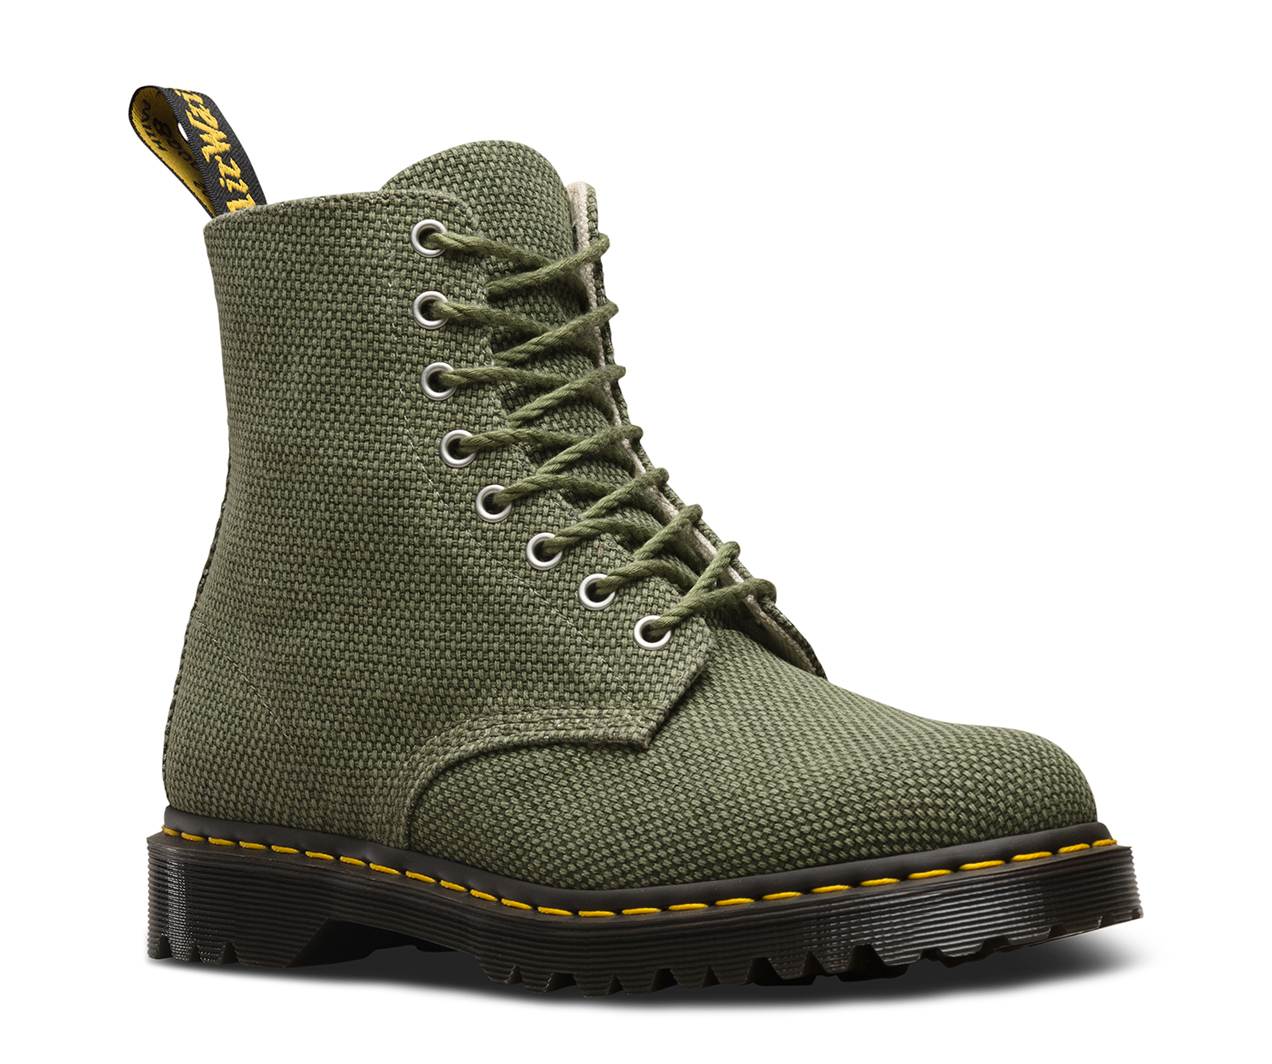 Pascal 8-Eye Boots In Heavy Canvas - Black Dr. Martens Clearance Wholesale Price Cheap Fast Delivery li9nxR7uW